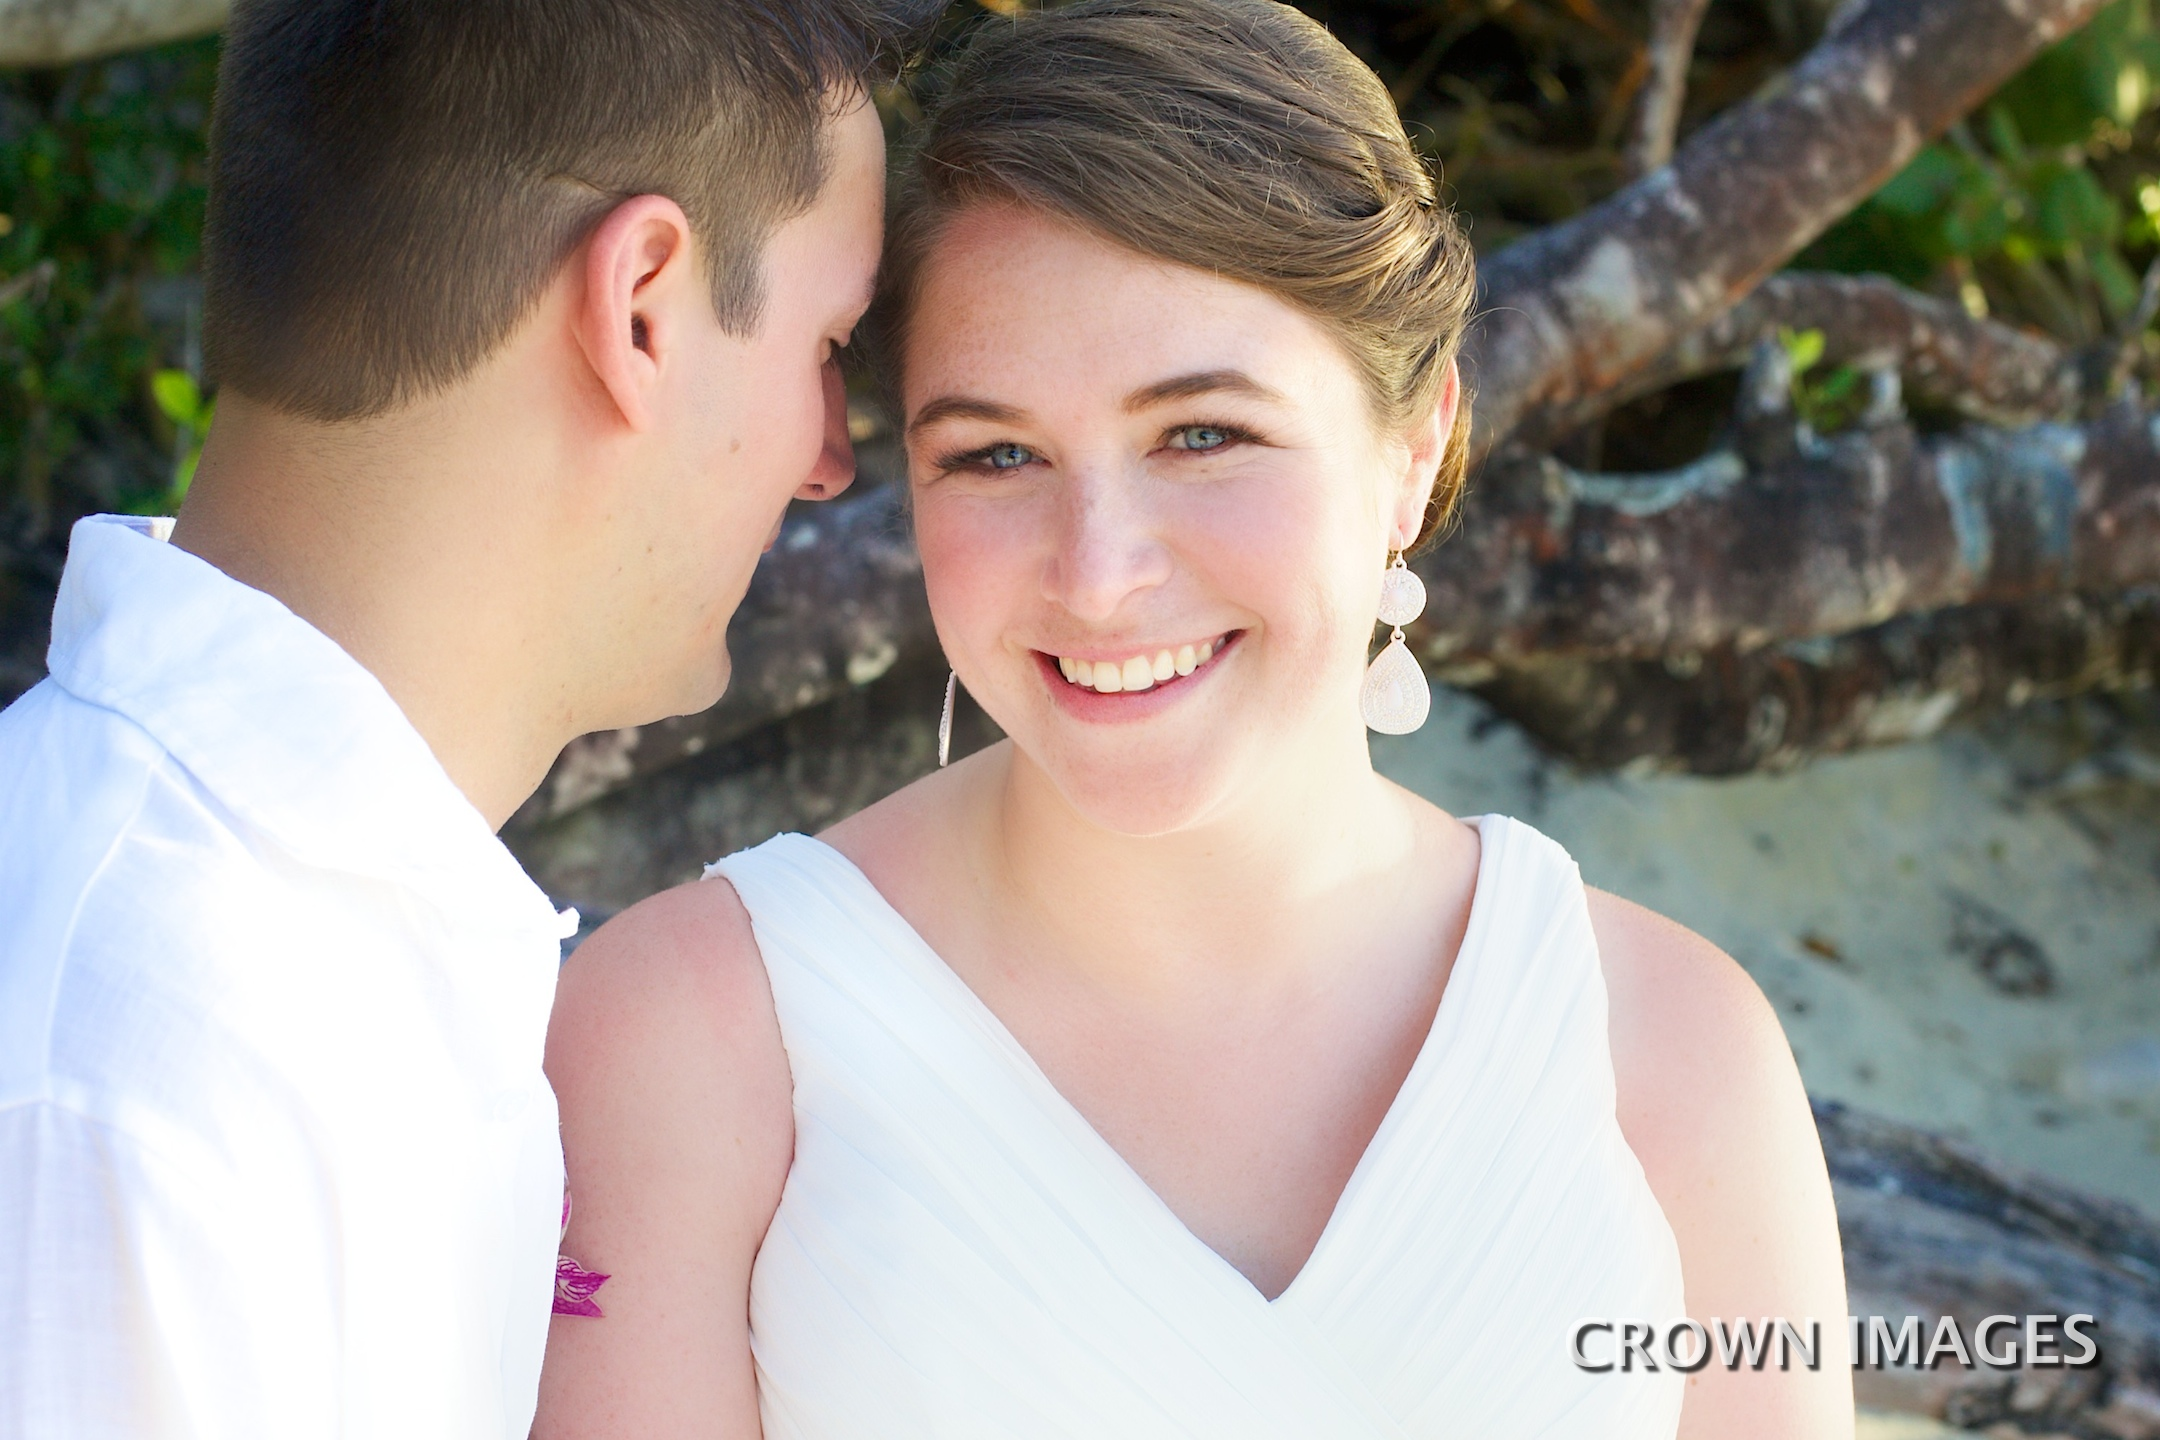 st_john_wedding_IMG_7099.jpg